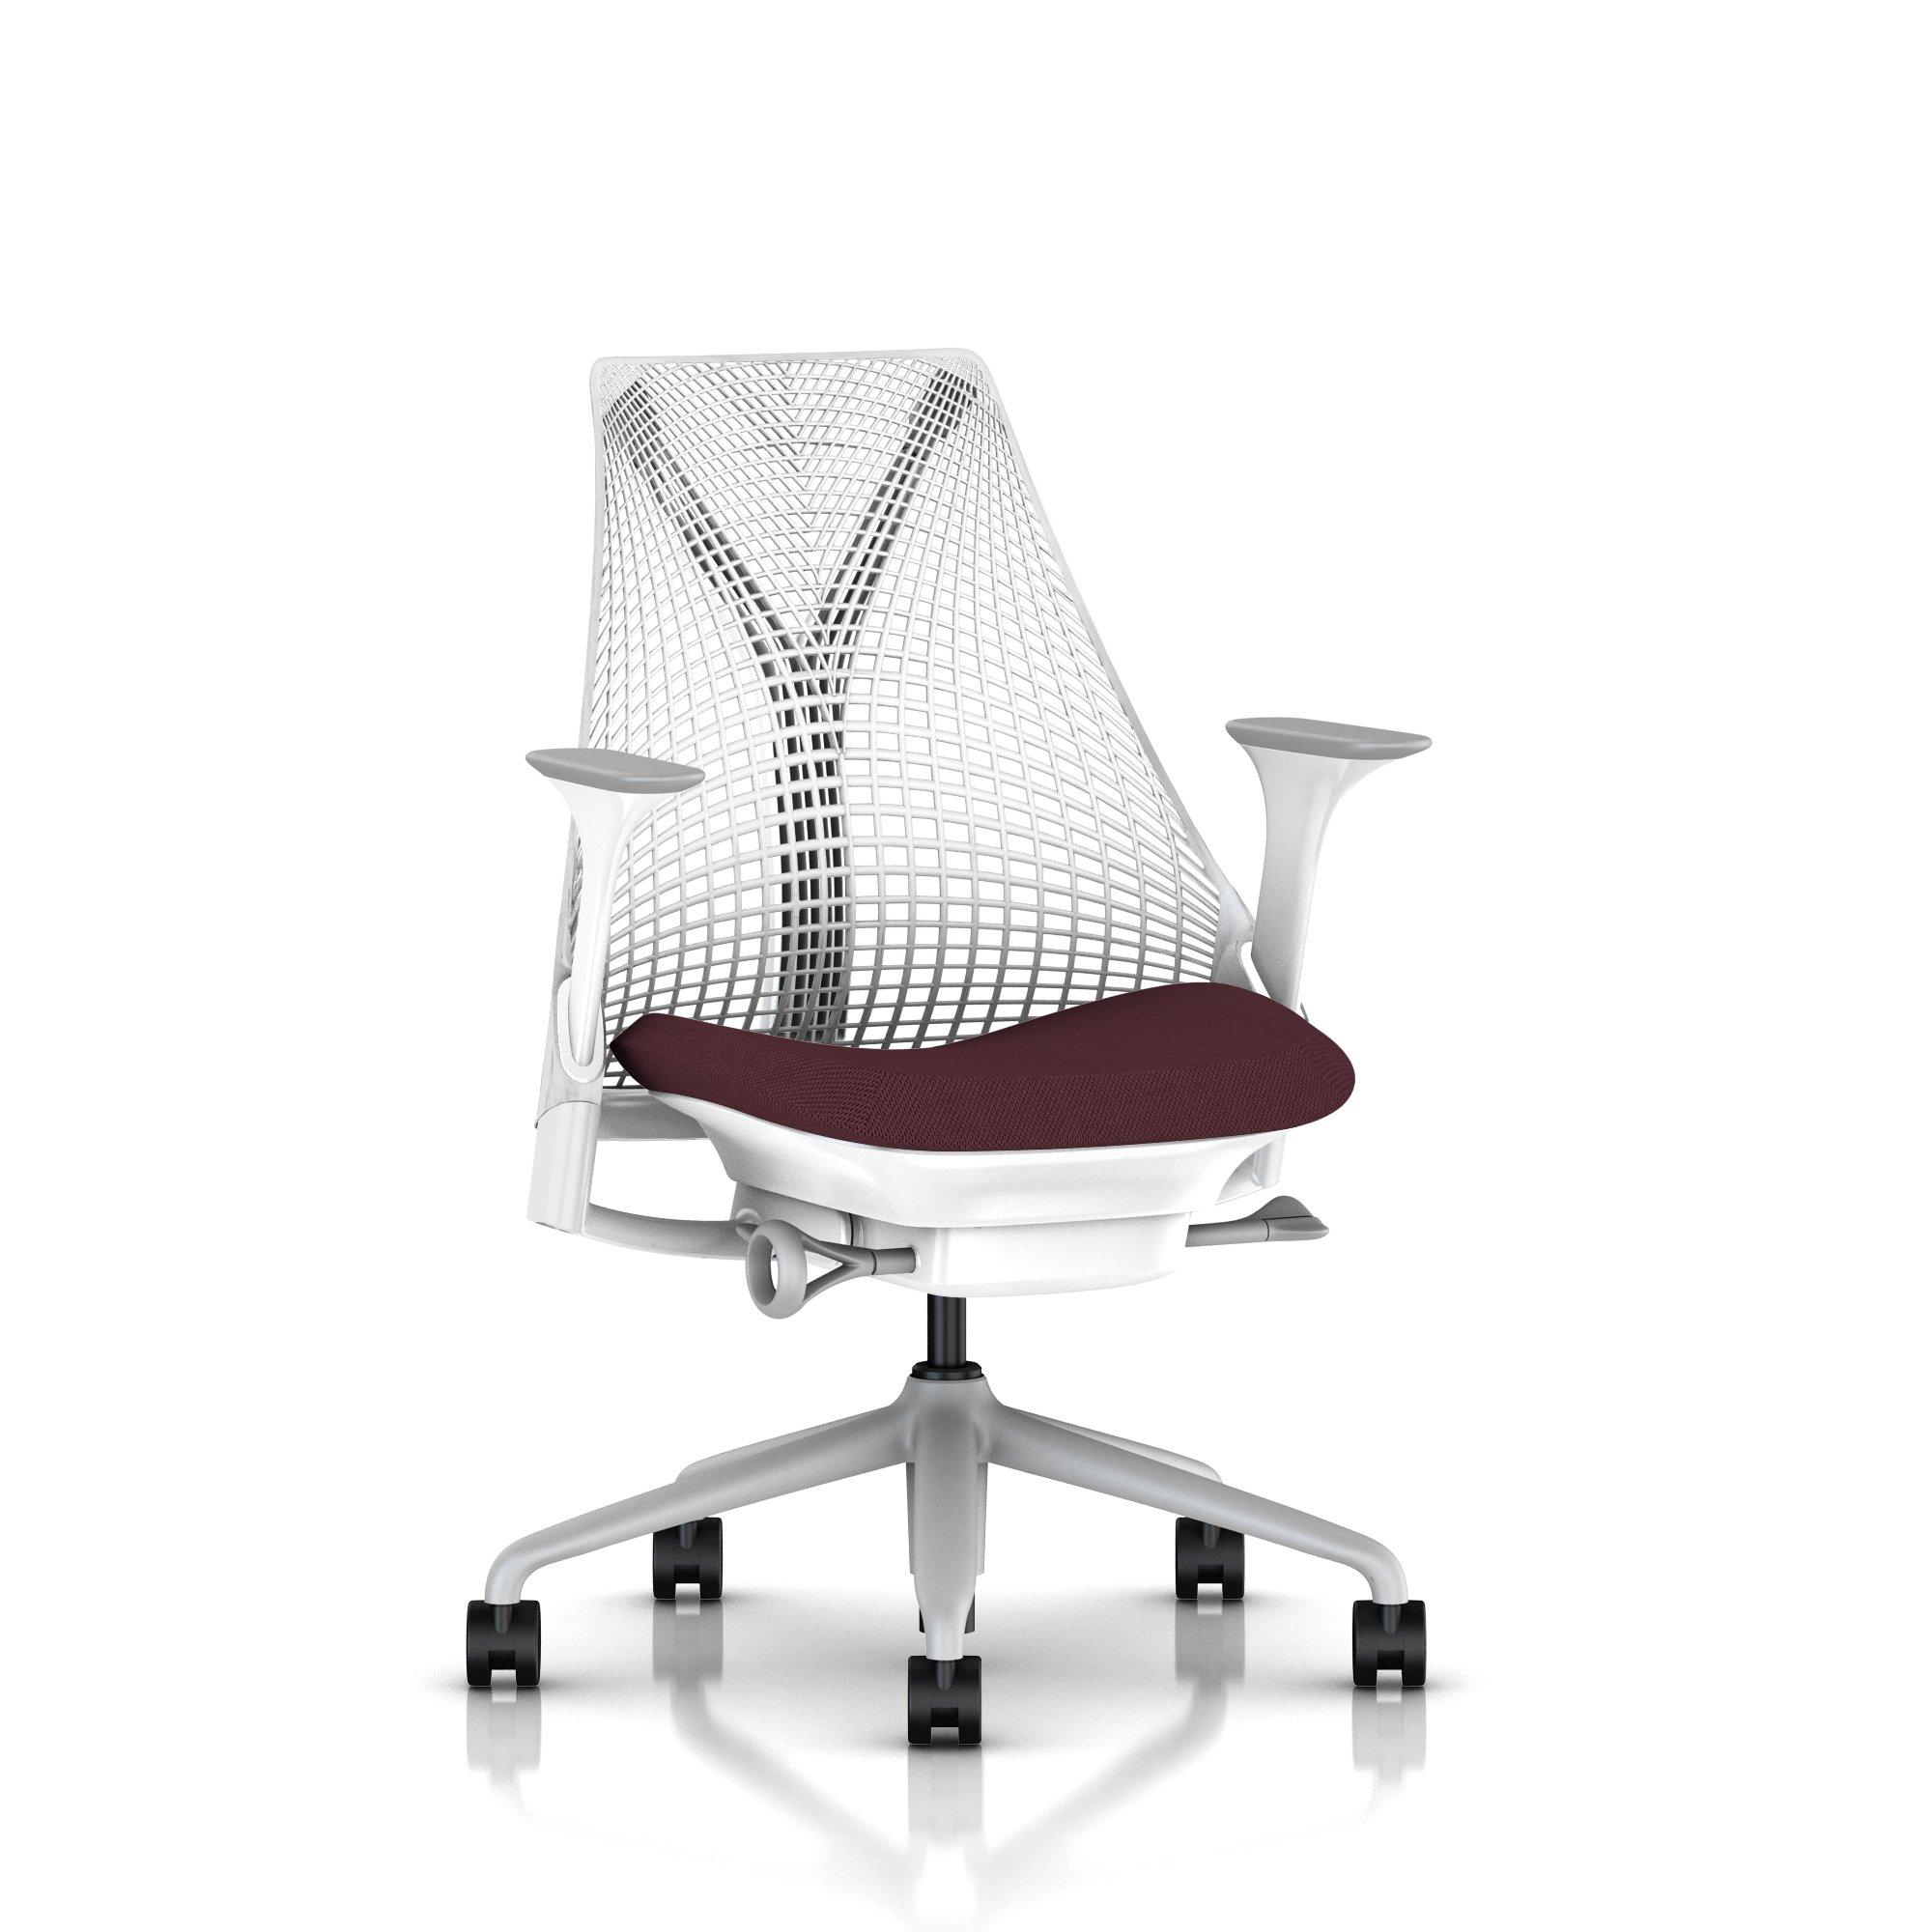 Quince Sayl-Fog base / White frame and Y tower Studio White Back Cosmo Quince Fabric Seat Fog Armpad Tilt Limiter with Seat Angle Adjustment Height Adjustable Arms Adjustable Seat Depth Non-Adjustable Back Support 2.5-inch Standard Carpet Casters